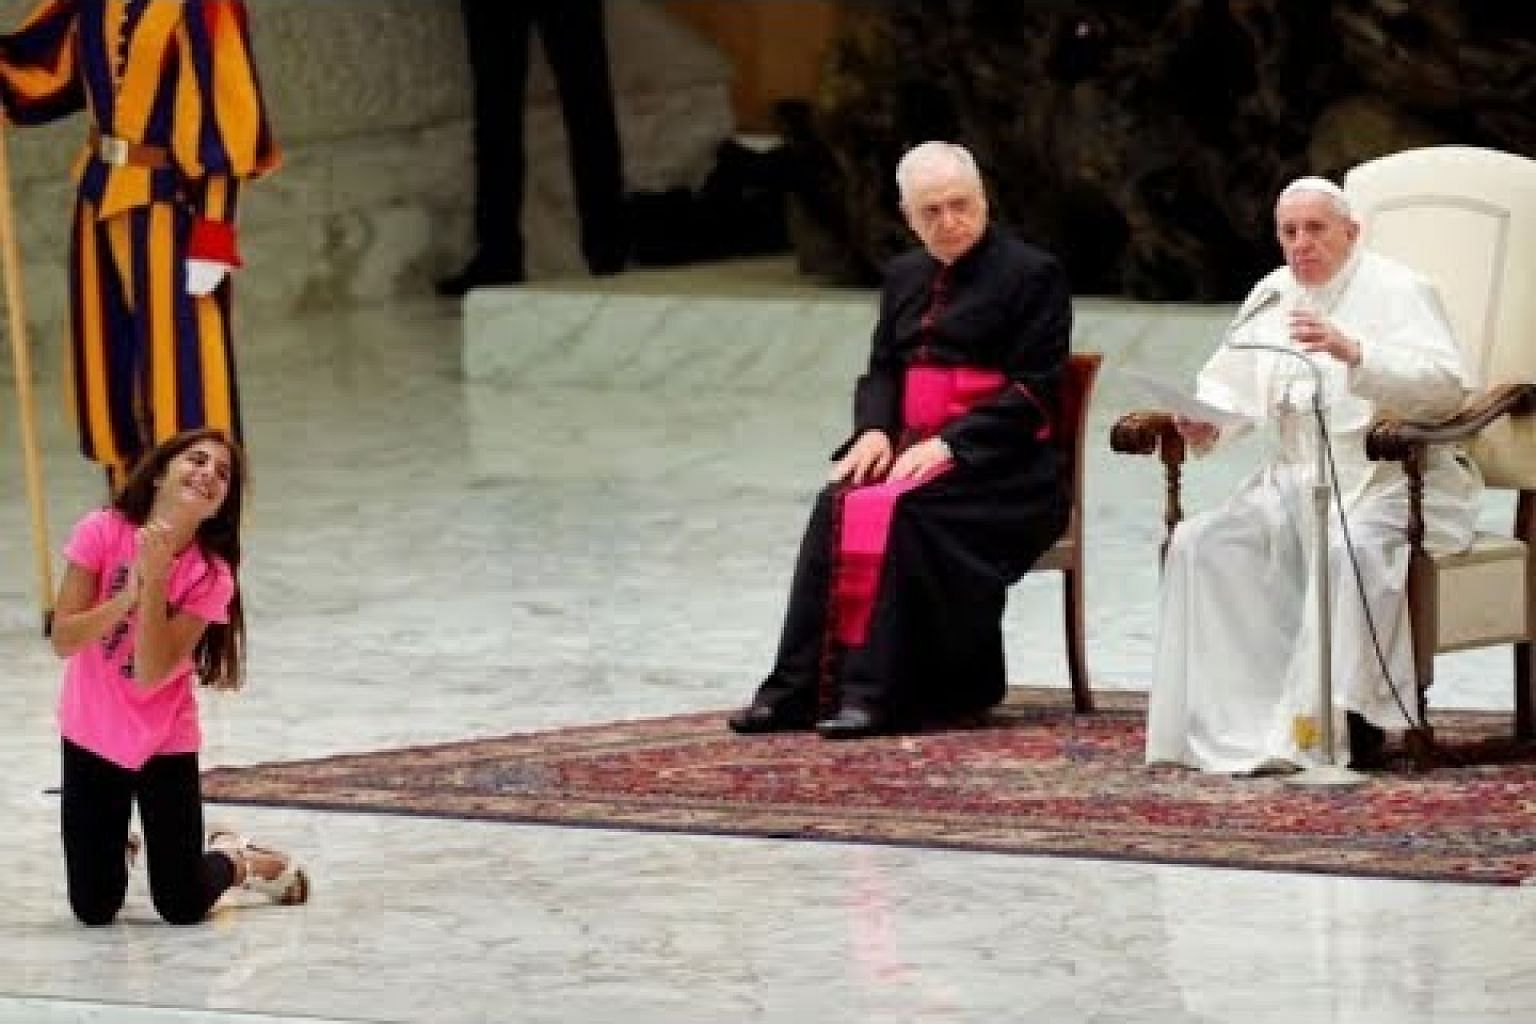 Pope gives girl free run of audience stage, delighting crowd